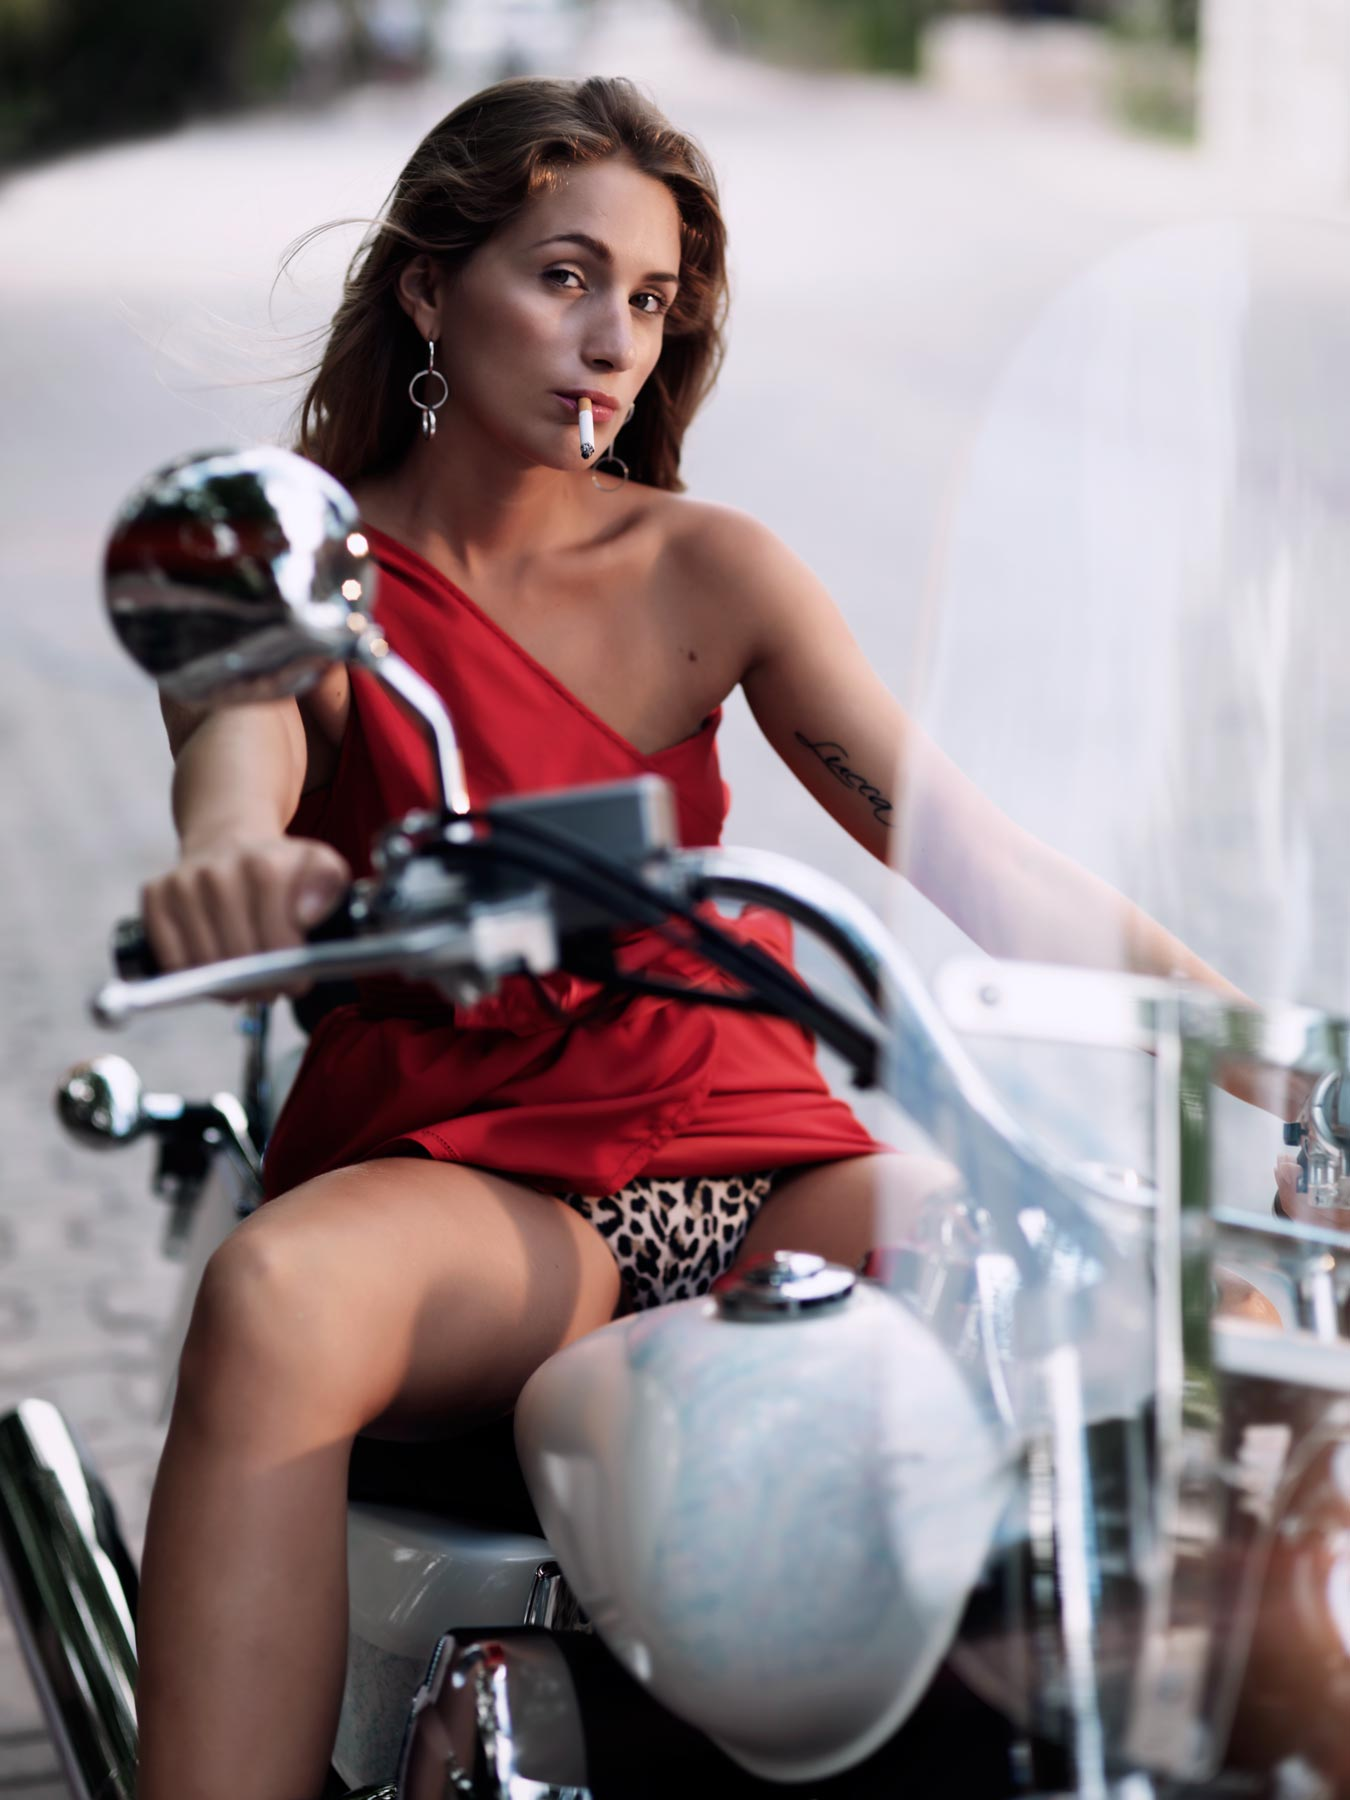 bad-ass-bike-girl_rkphoto-2.jpg